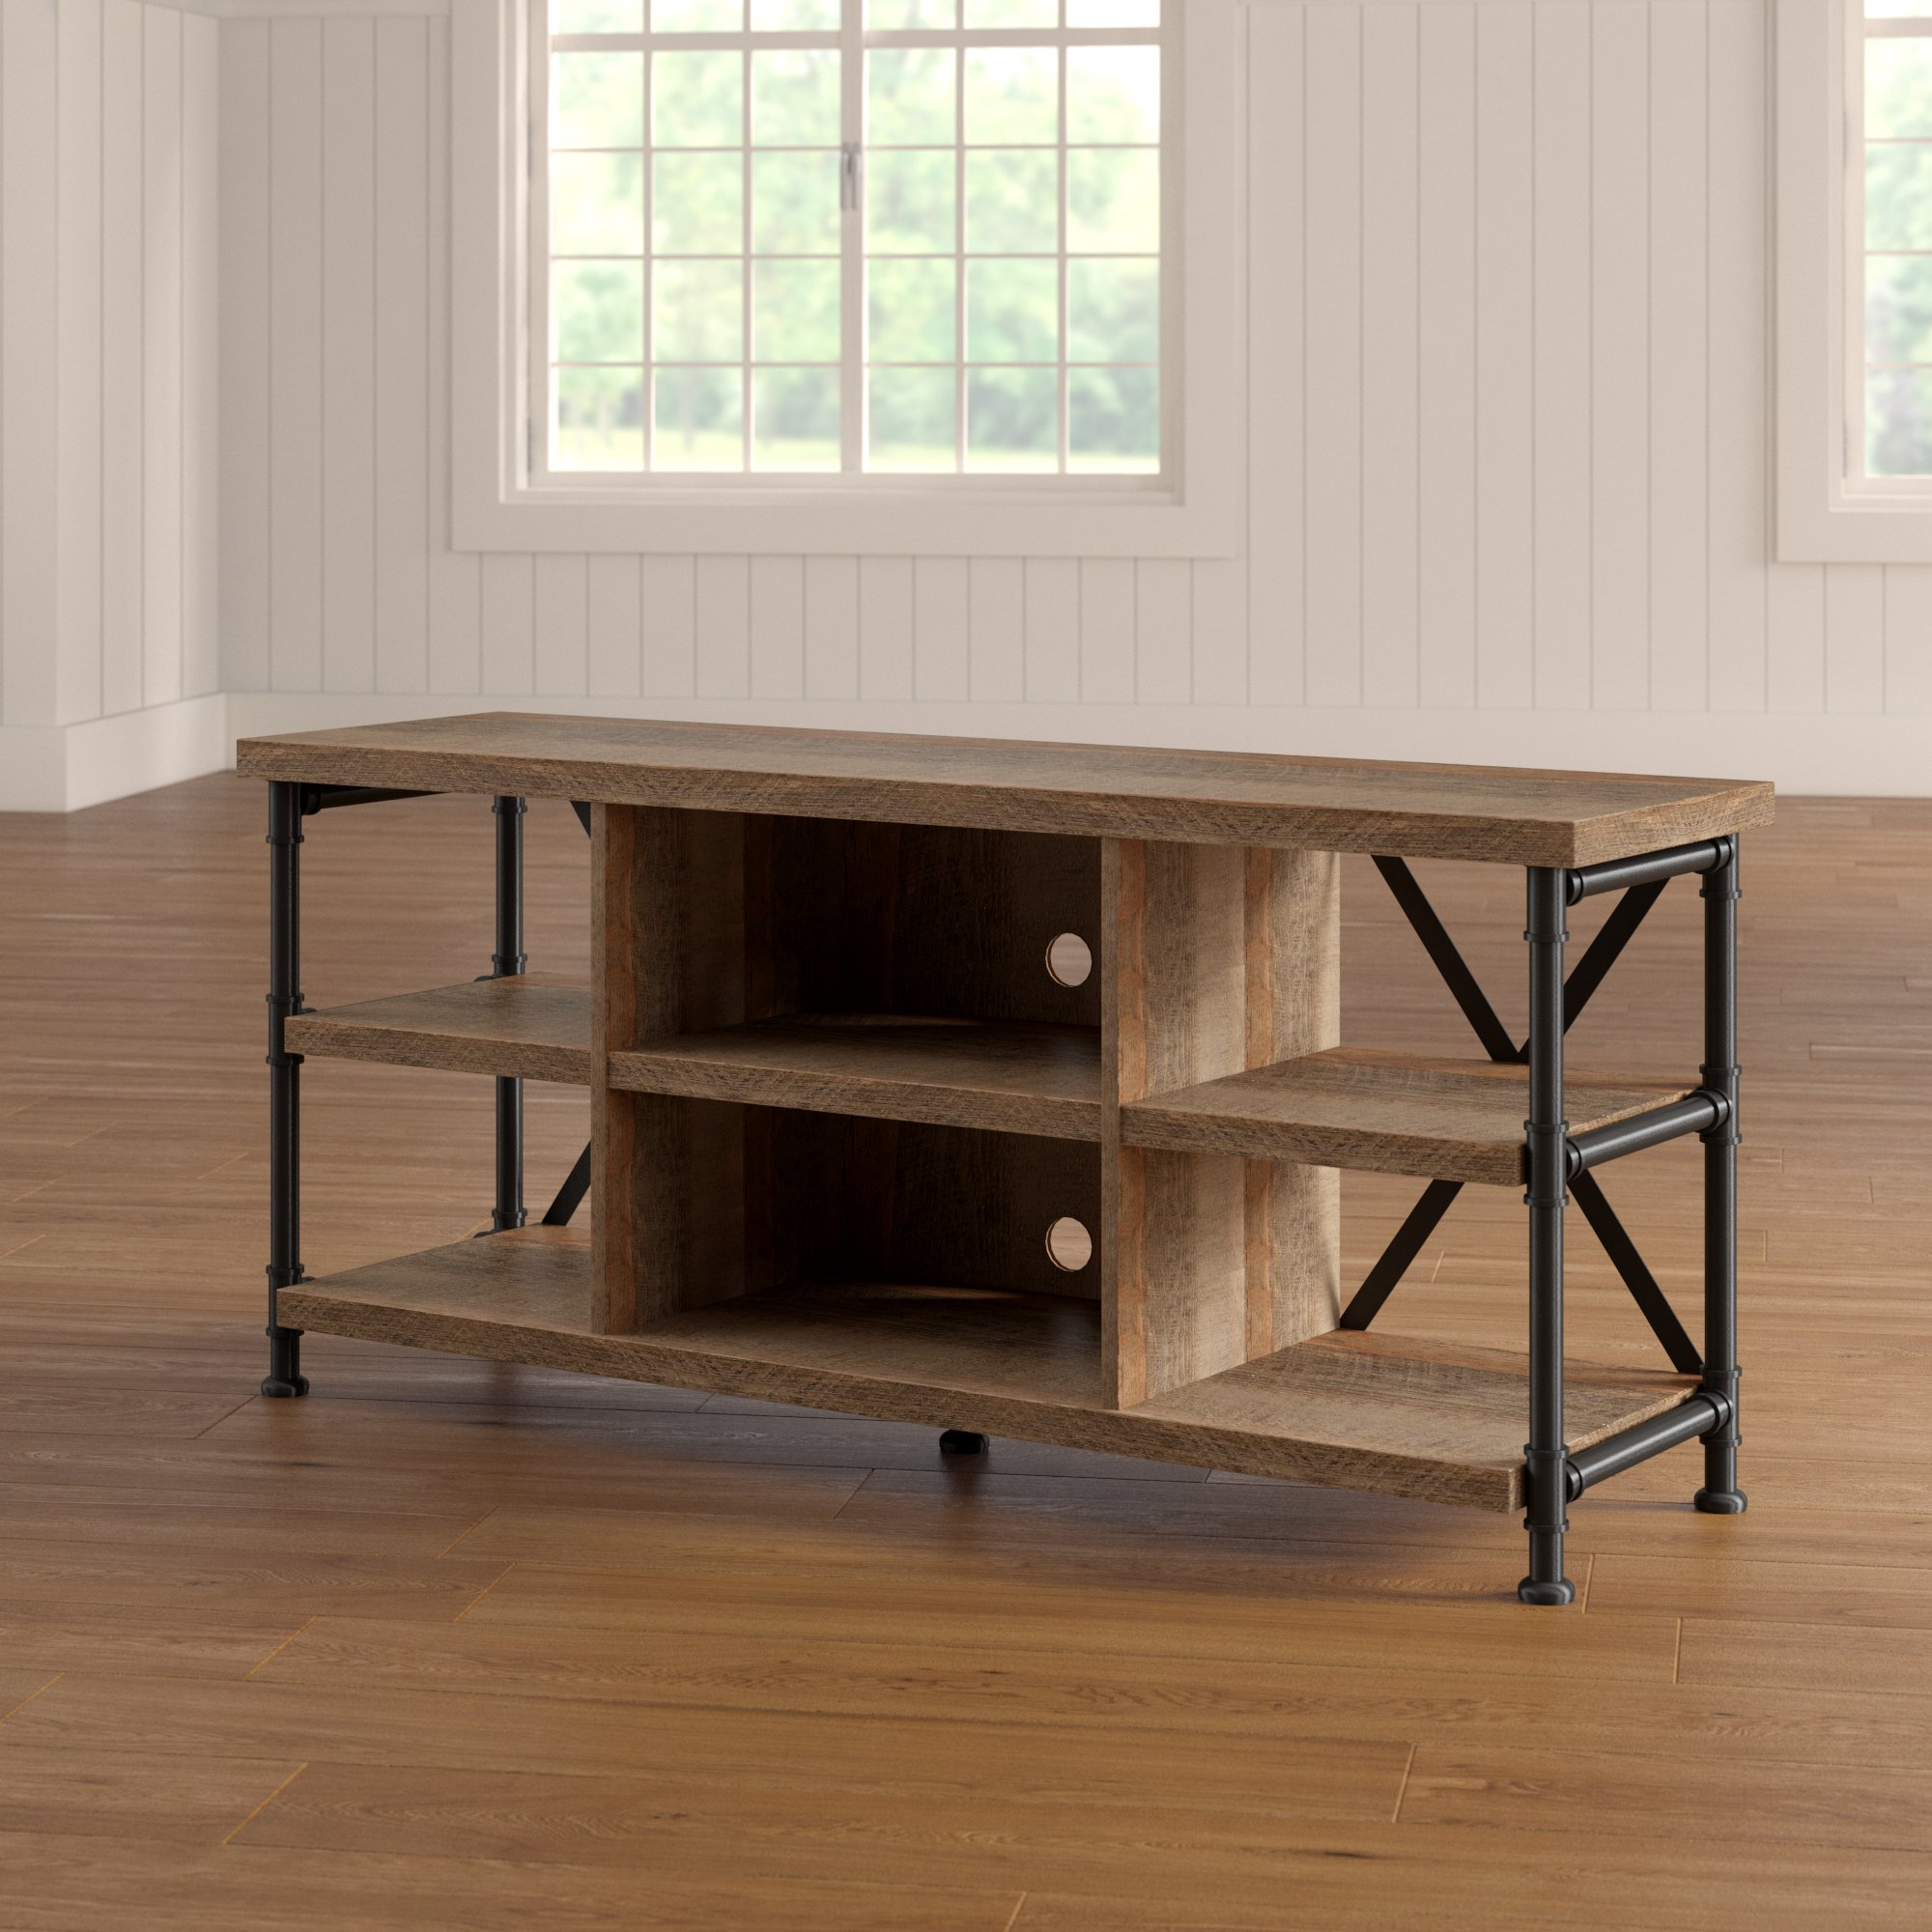 Tv Stands & Entertainment Centers You'll Love | Wayfair Inside Kenzie 60 Inch Open Display Tv Stands (View 23 of 30)